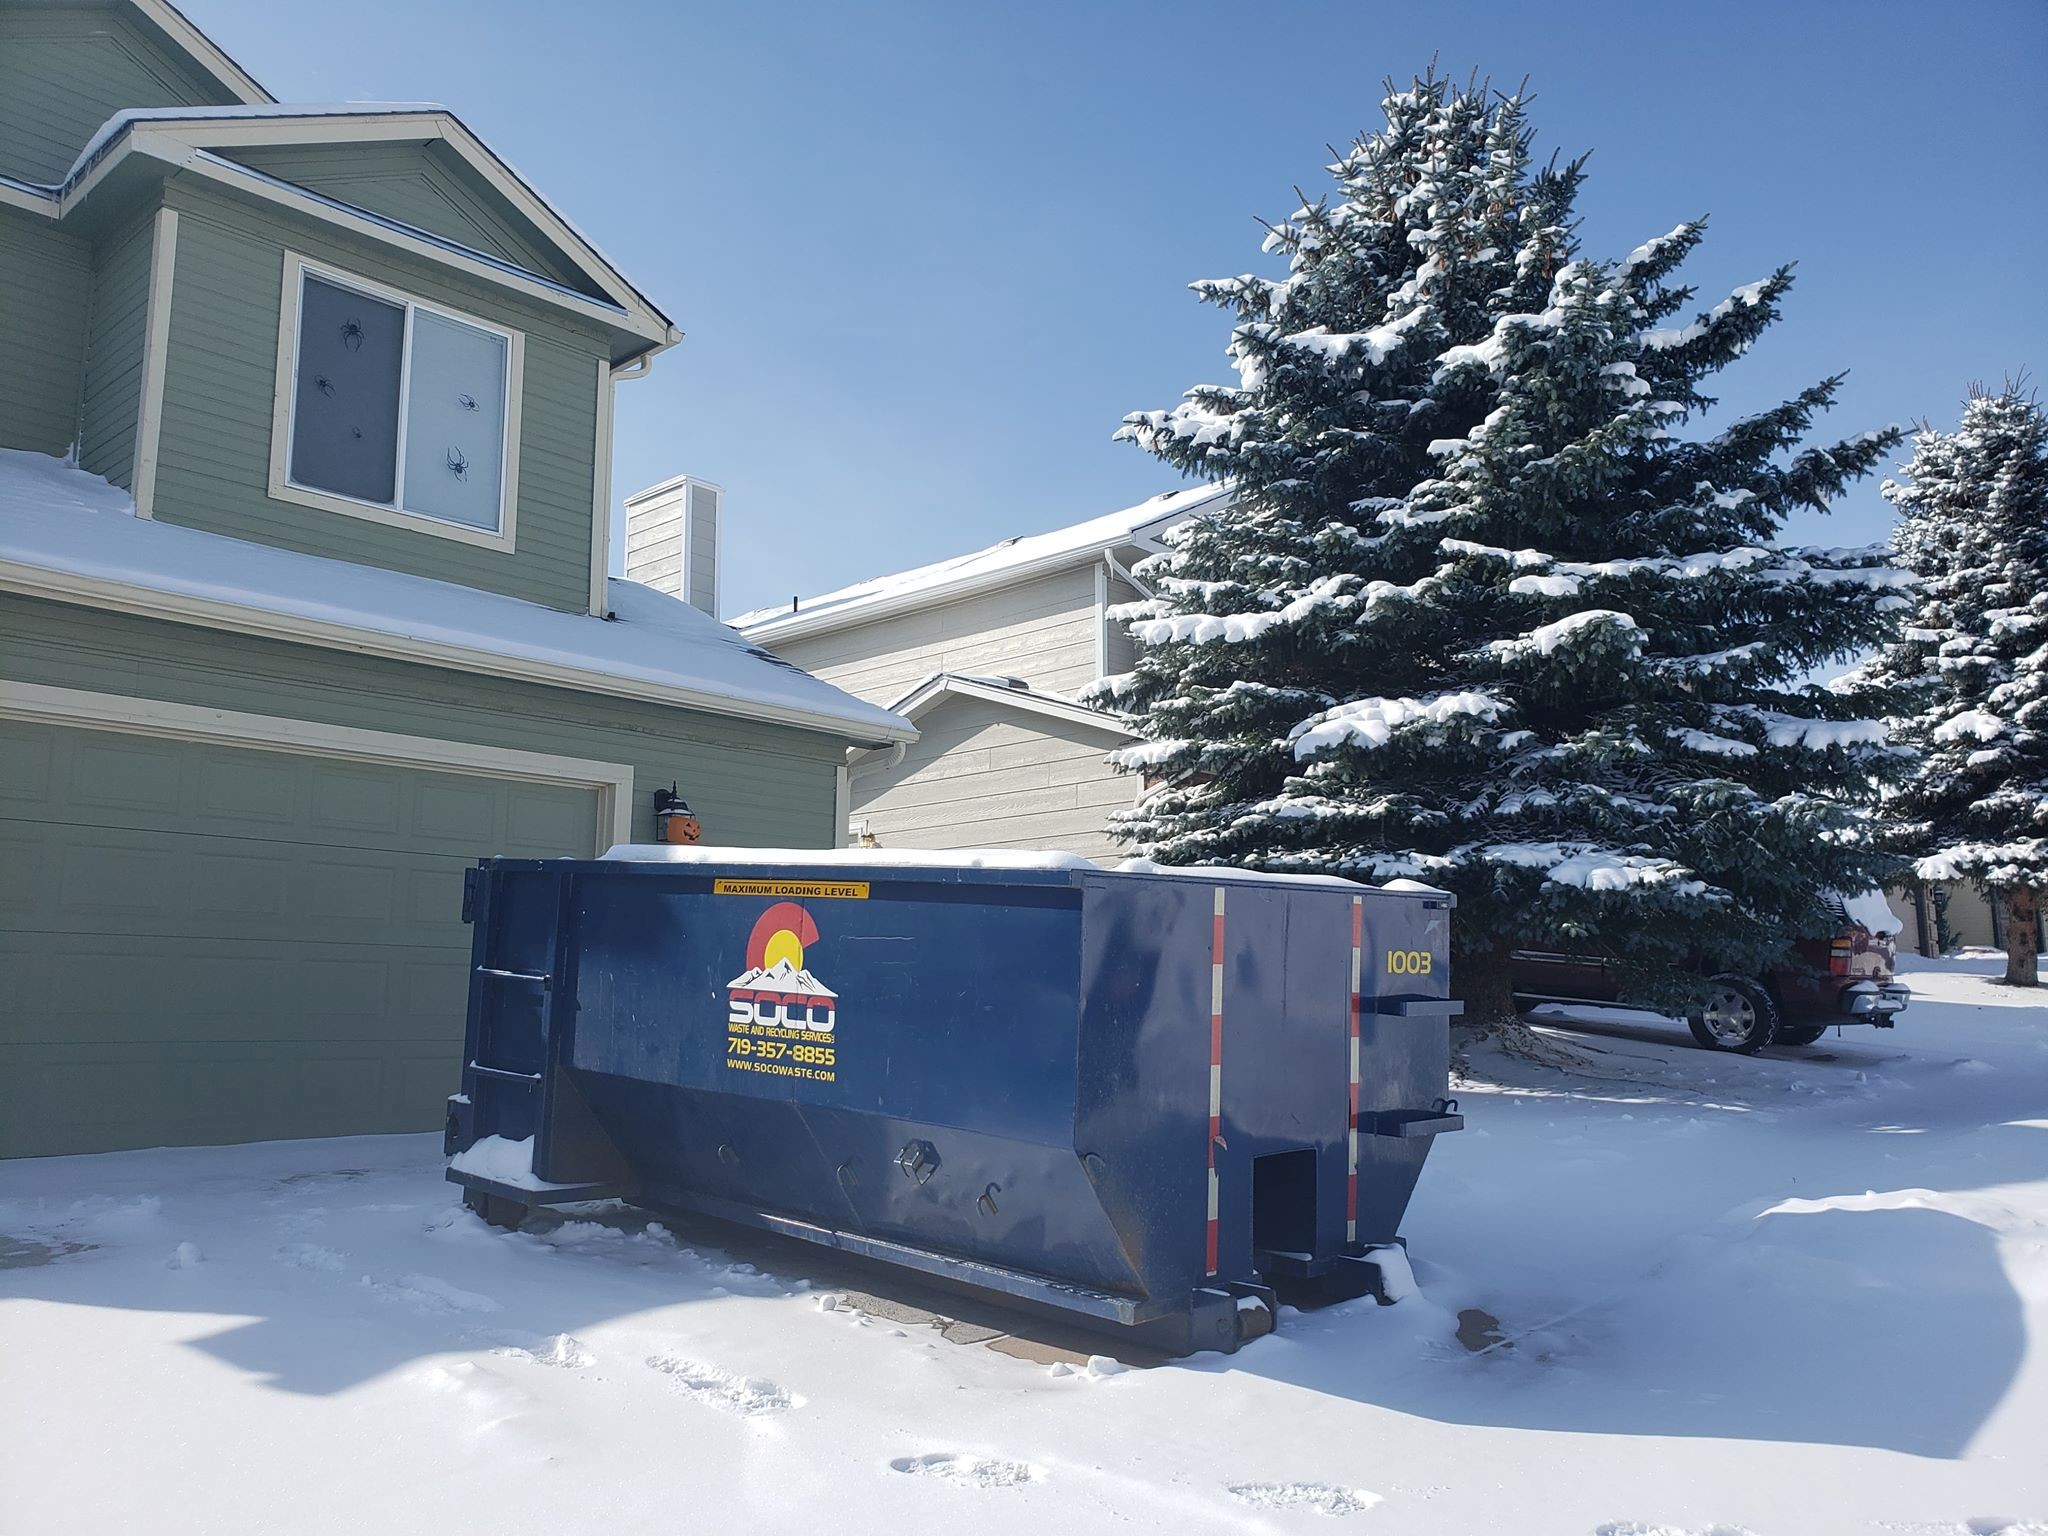 10 Yard Roll Off Dumpster Rental Price In Colorado Springs Co Soco Waste